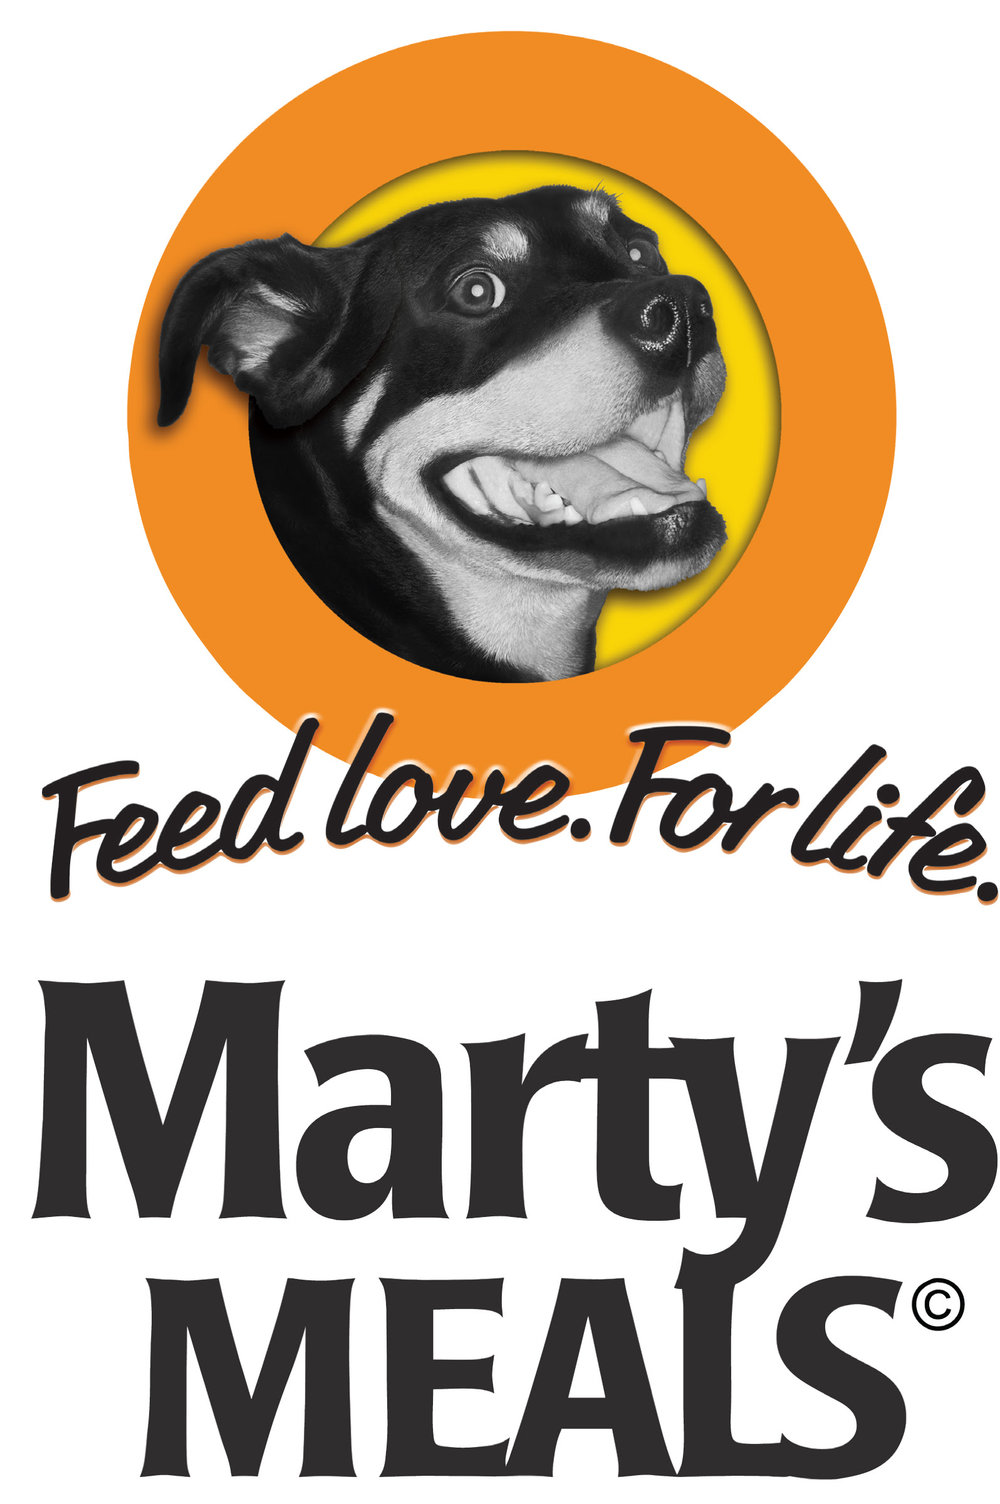 MARTY'S MEALS# LOCATION:  #2750 GLENWOOD DR. SUITE 3 # BOULDER, CO 80304  #303.442.0777